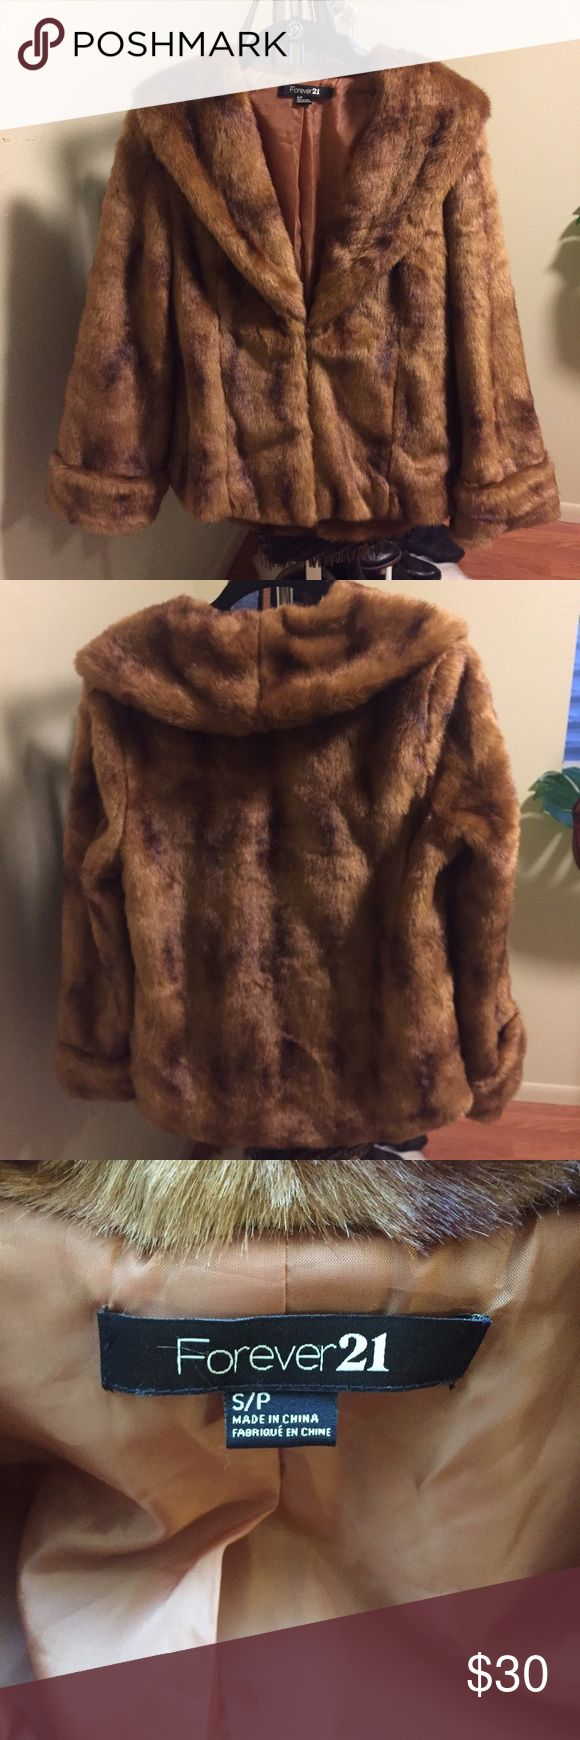 Faux Fur Coat, Forever 21 A gorgeous brown faux fur coat with a mock neck, satin lining, long sleeves, a single front hook and a boxy silhouette. I wore this coat one time so it's practically new! No trades. Forever 21 Jackets & Coats